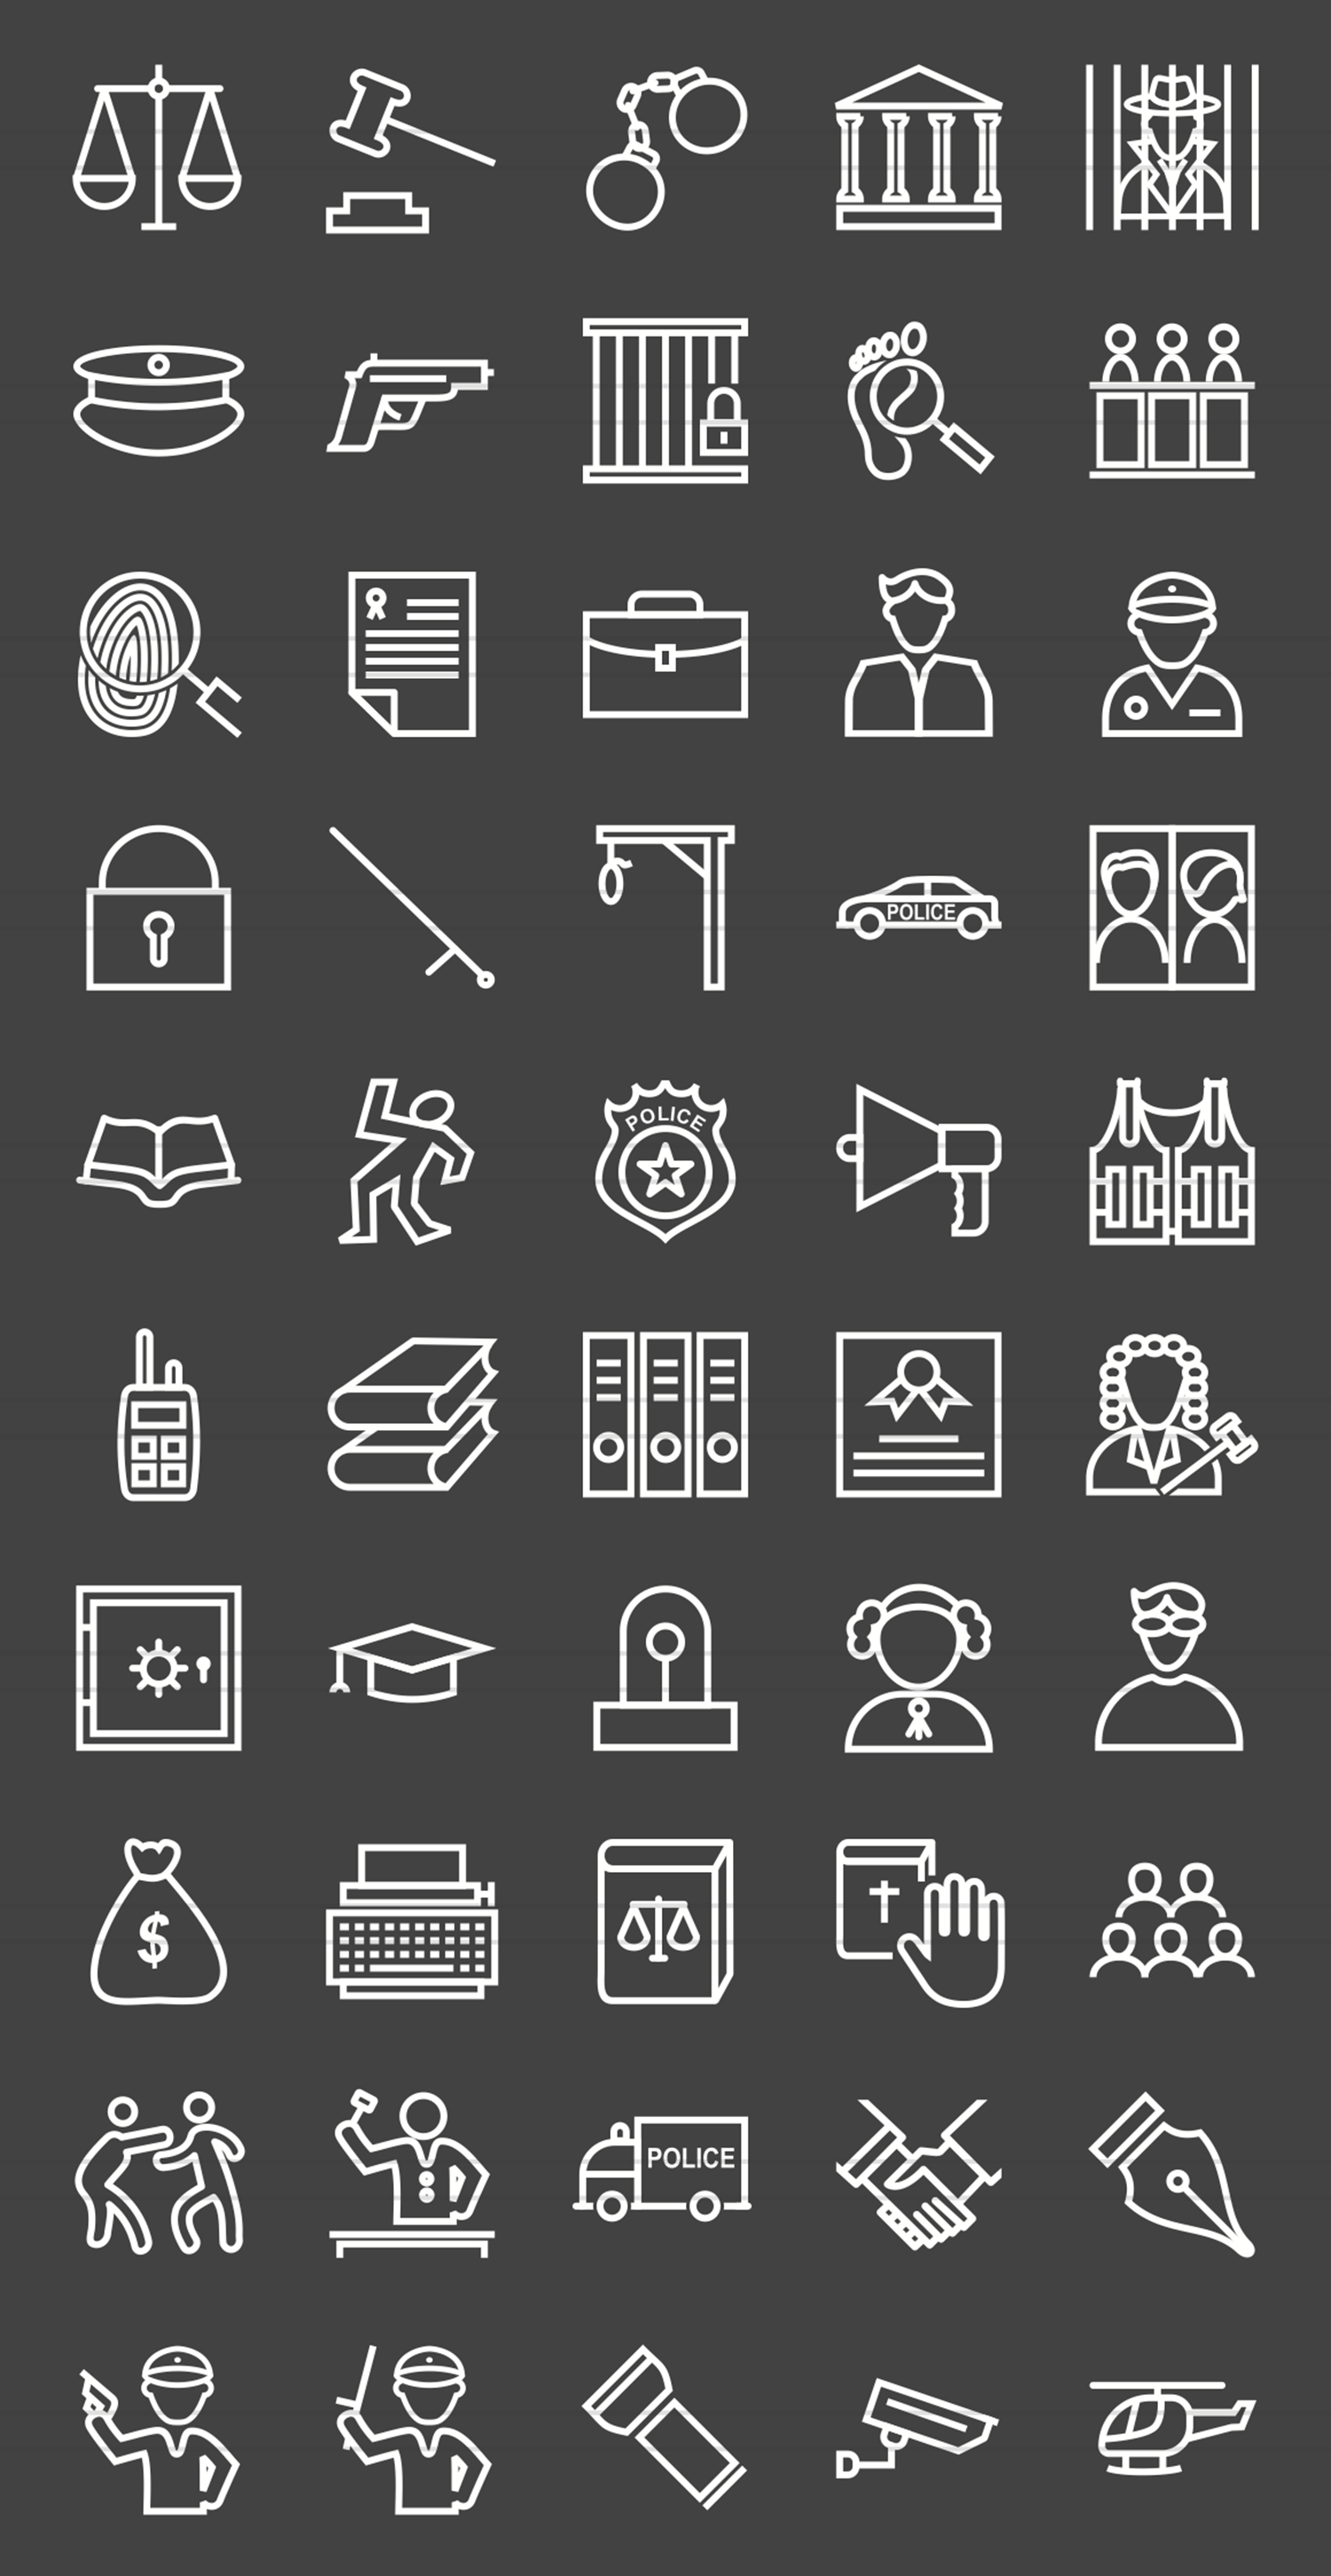 50 Law & Order Line Inverted Icons example image 2